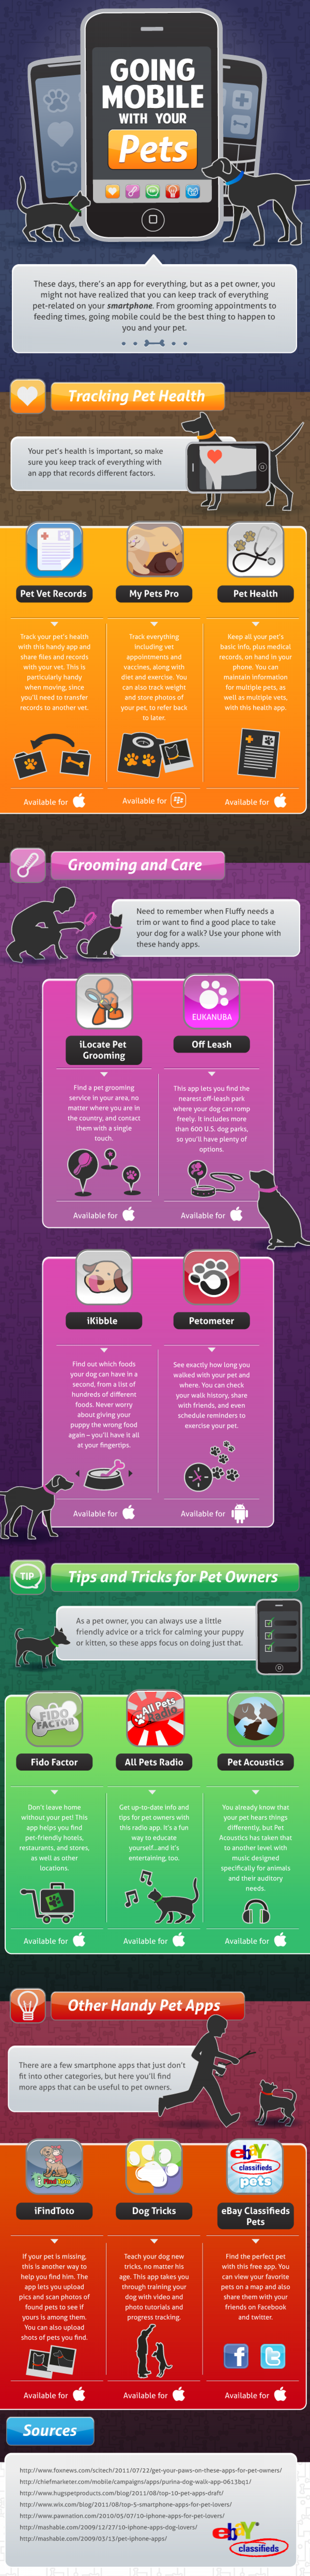 13 Helpful Apps for Taking Care of Your Pets Infographic